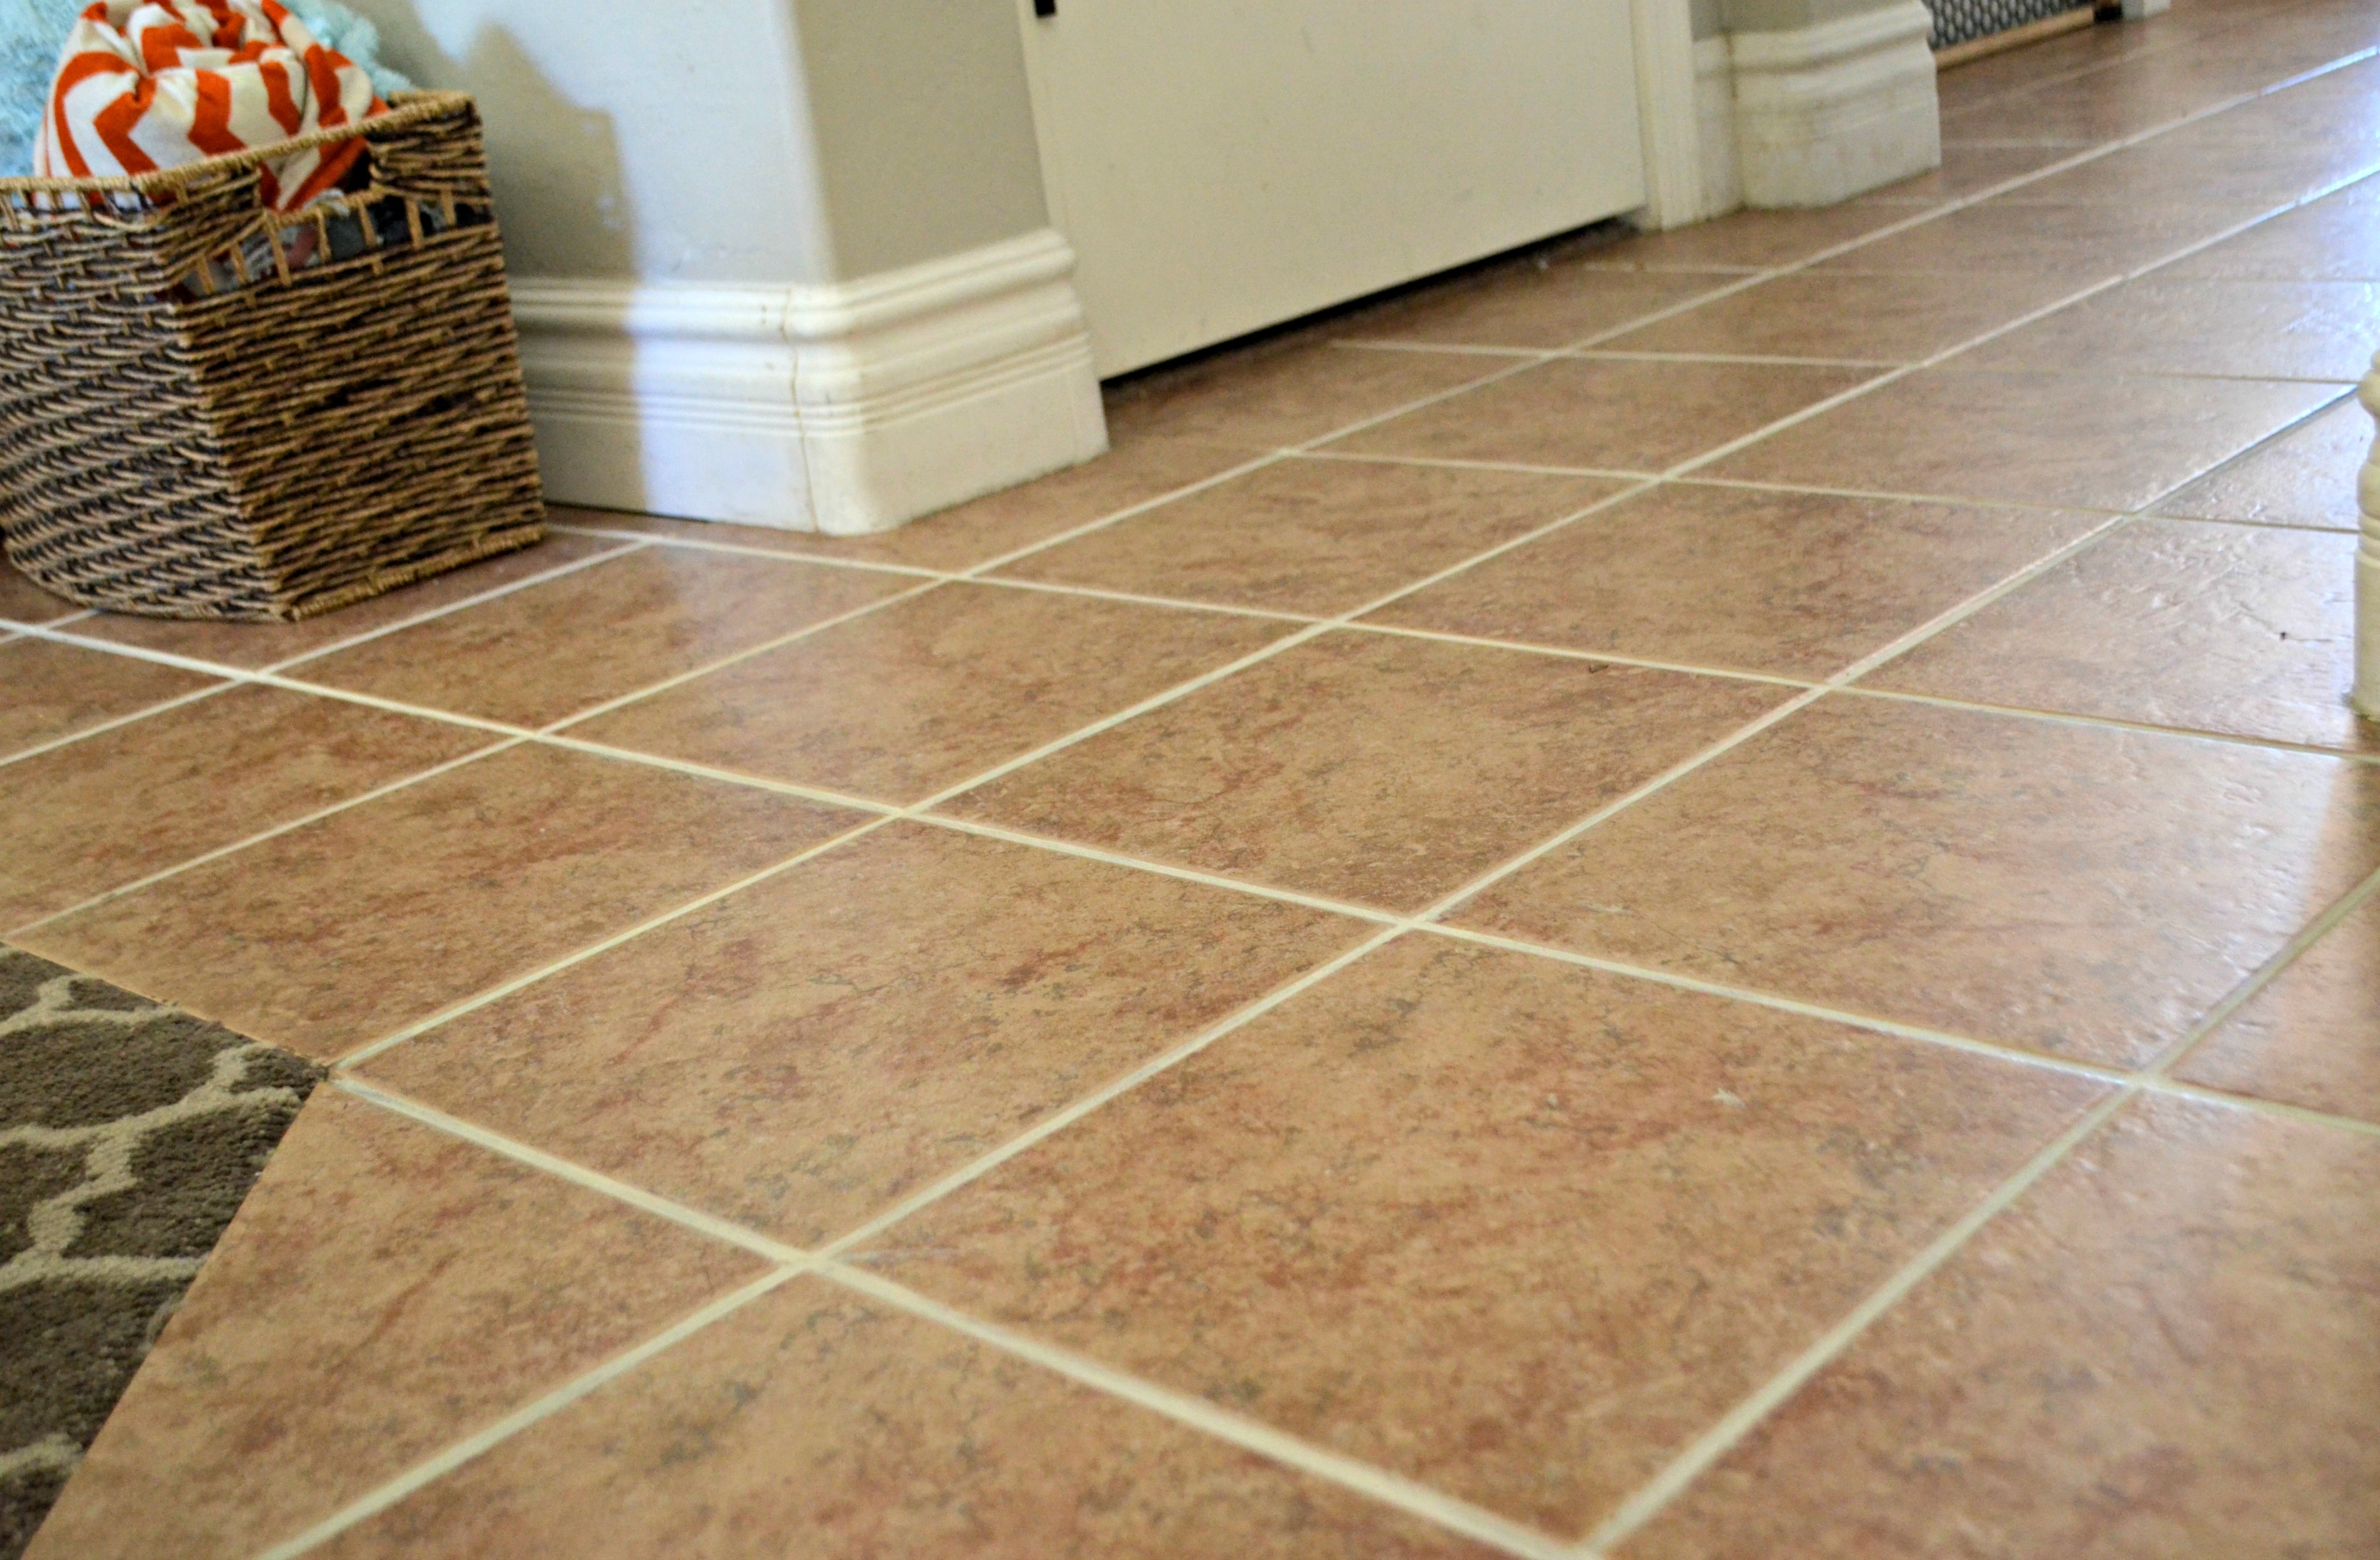 closeup of the tile floor after cleaning the grout